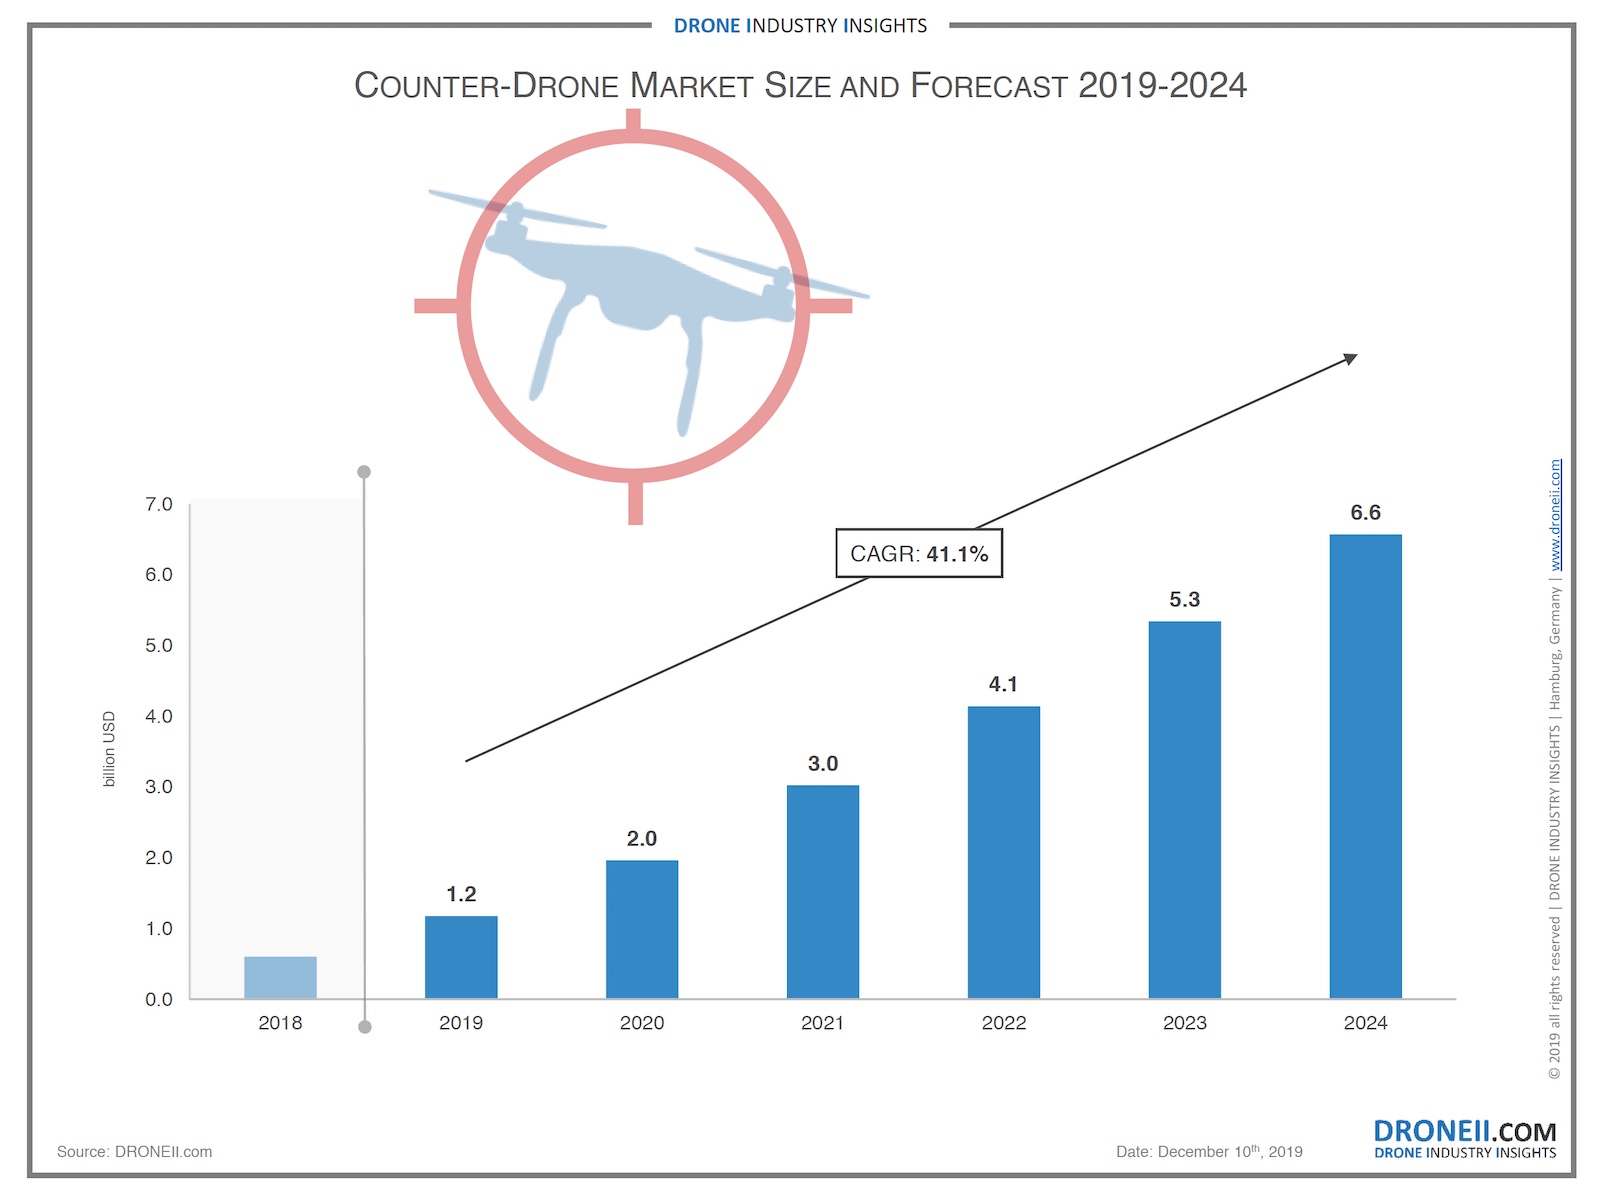 Counter-Drone Market Size and Forecast 2019-2024